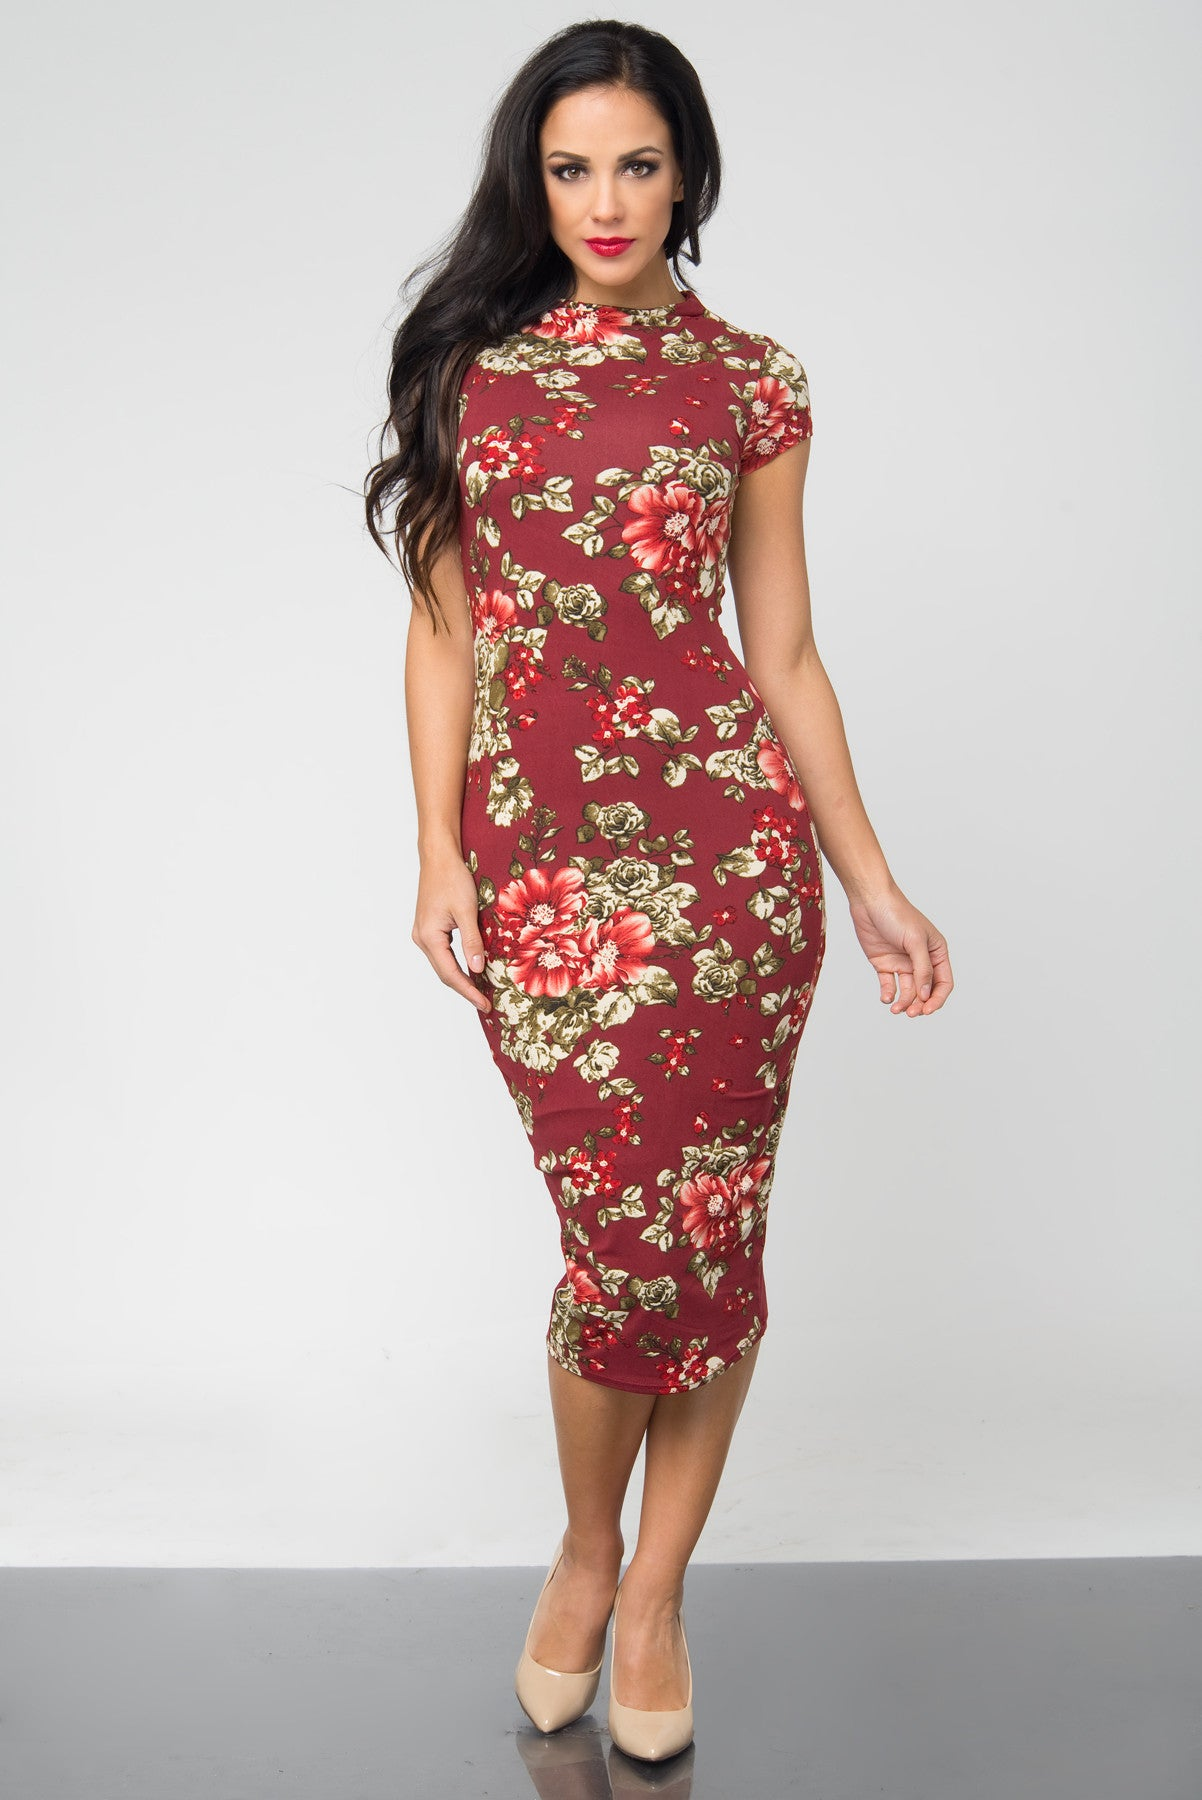 Brandi Floral Burgundy Midi Dress - Fashion Effect Store  - 1